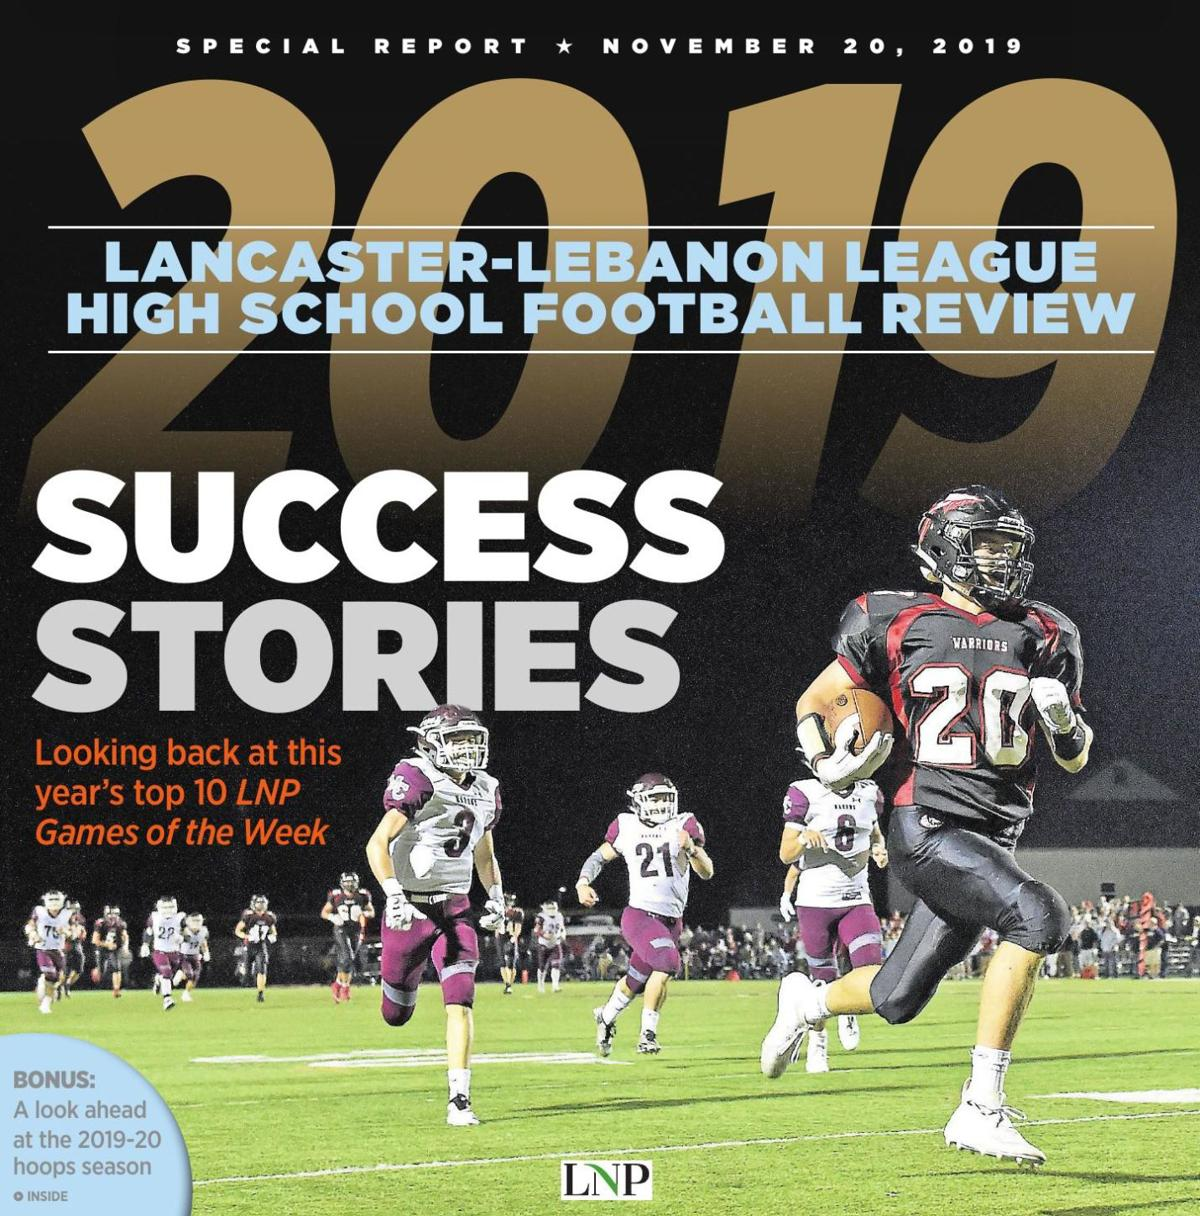 Lancaster-Lebanon League High School Football Review 2019